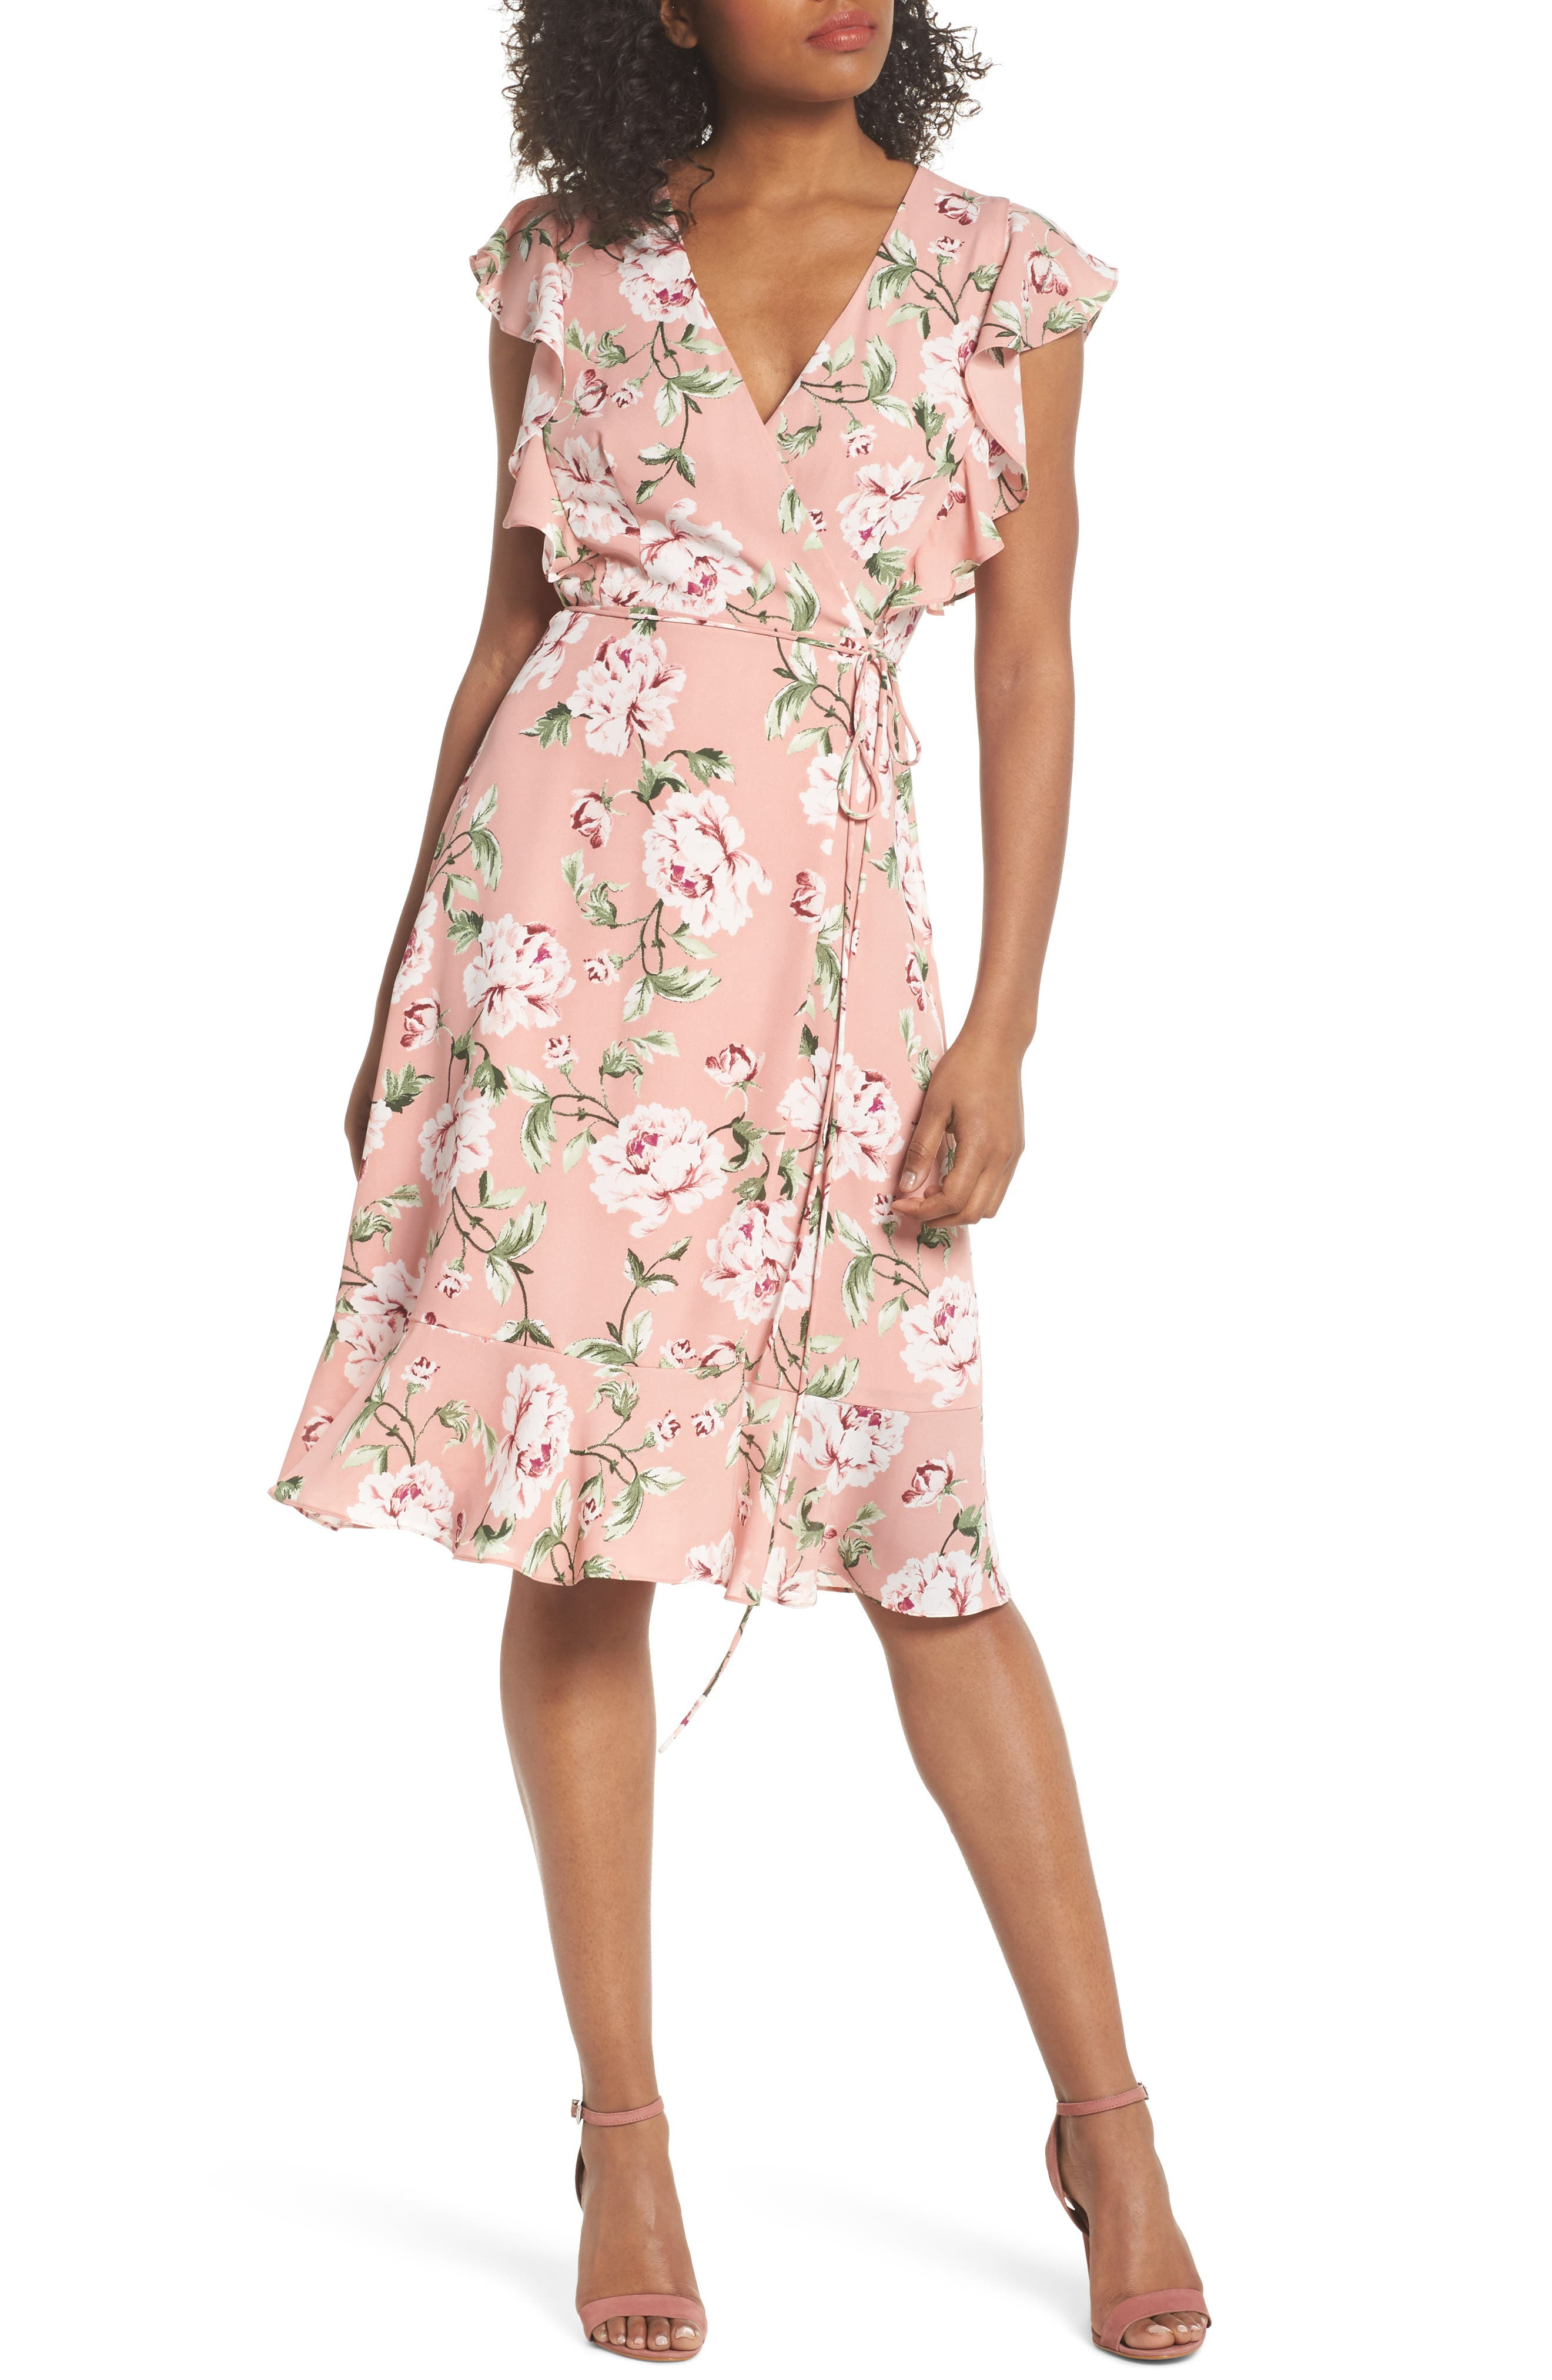 CHARLES HENRY, Ruffle Sleeve Floral Wrap Dress, Main thumbnail 1, color, 652